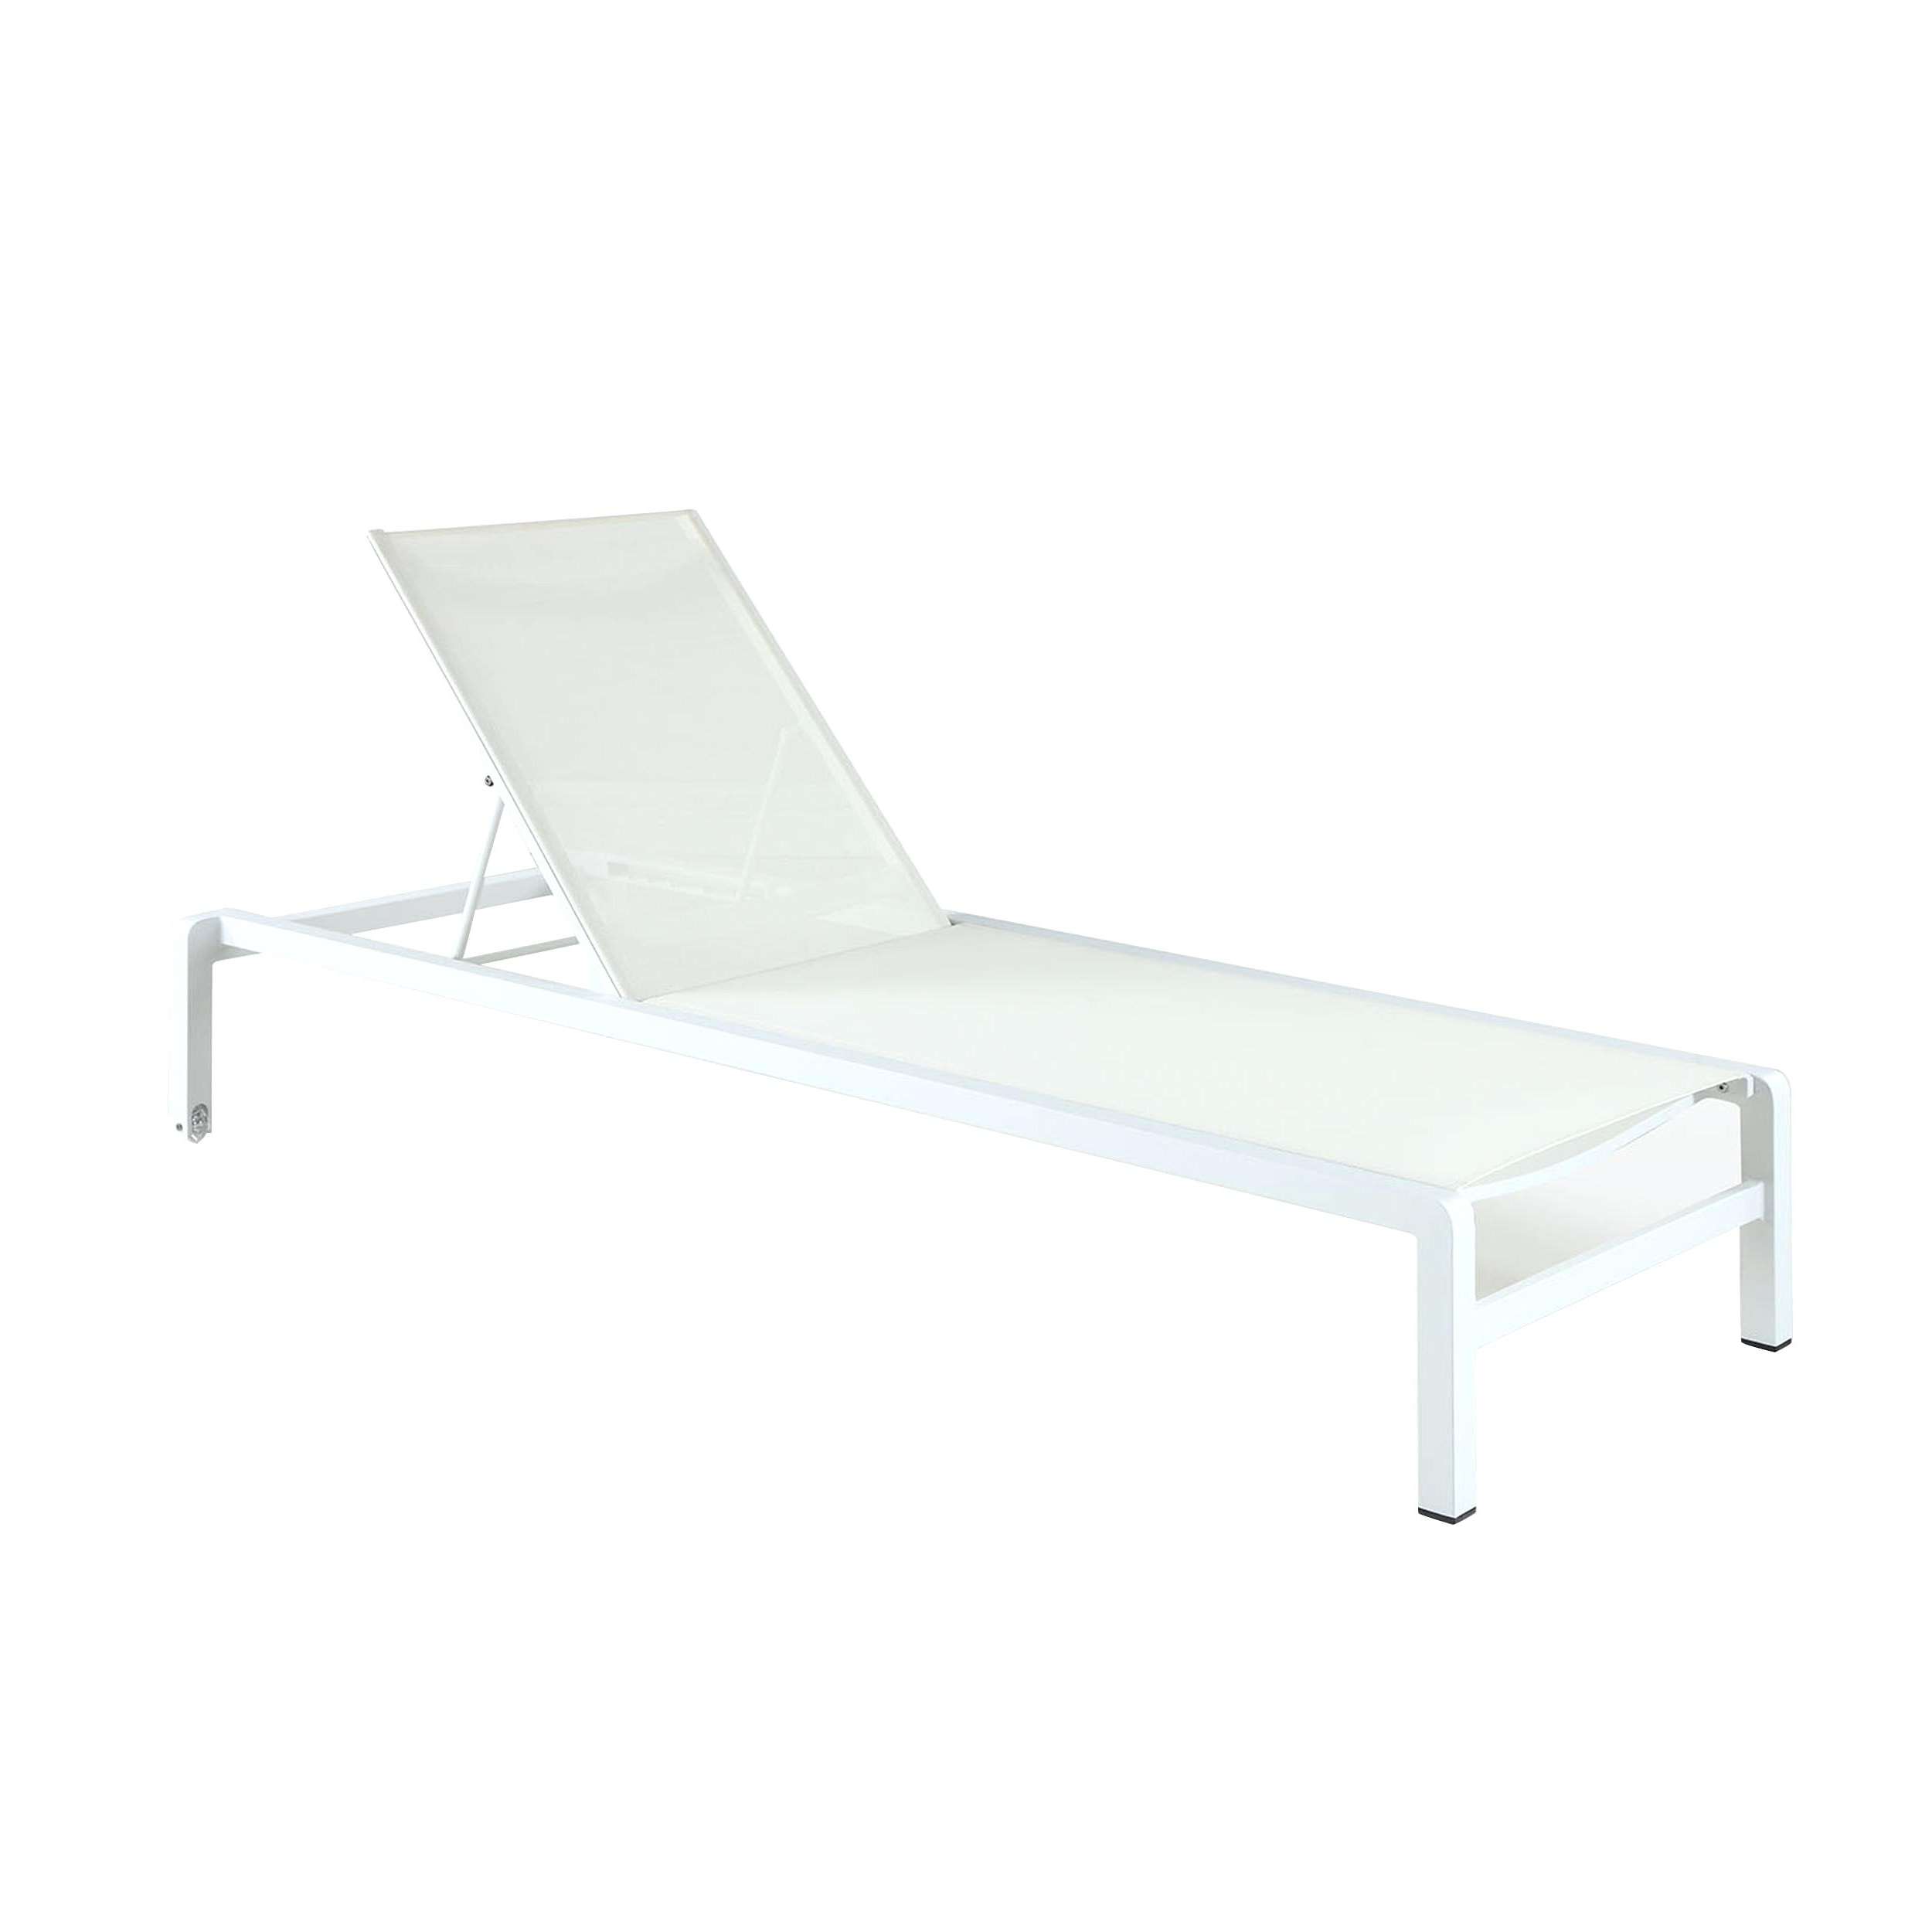 Trendy Shore Aluminum Outdoor Chaise Lounges Pertaining To Delectable Aluminum Chaise Lounge Chair Furniture Outdoor (View 18 of 25)